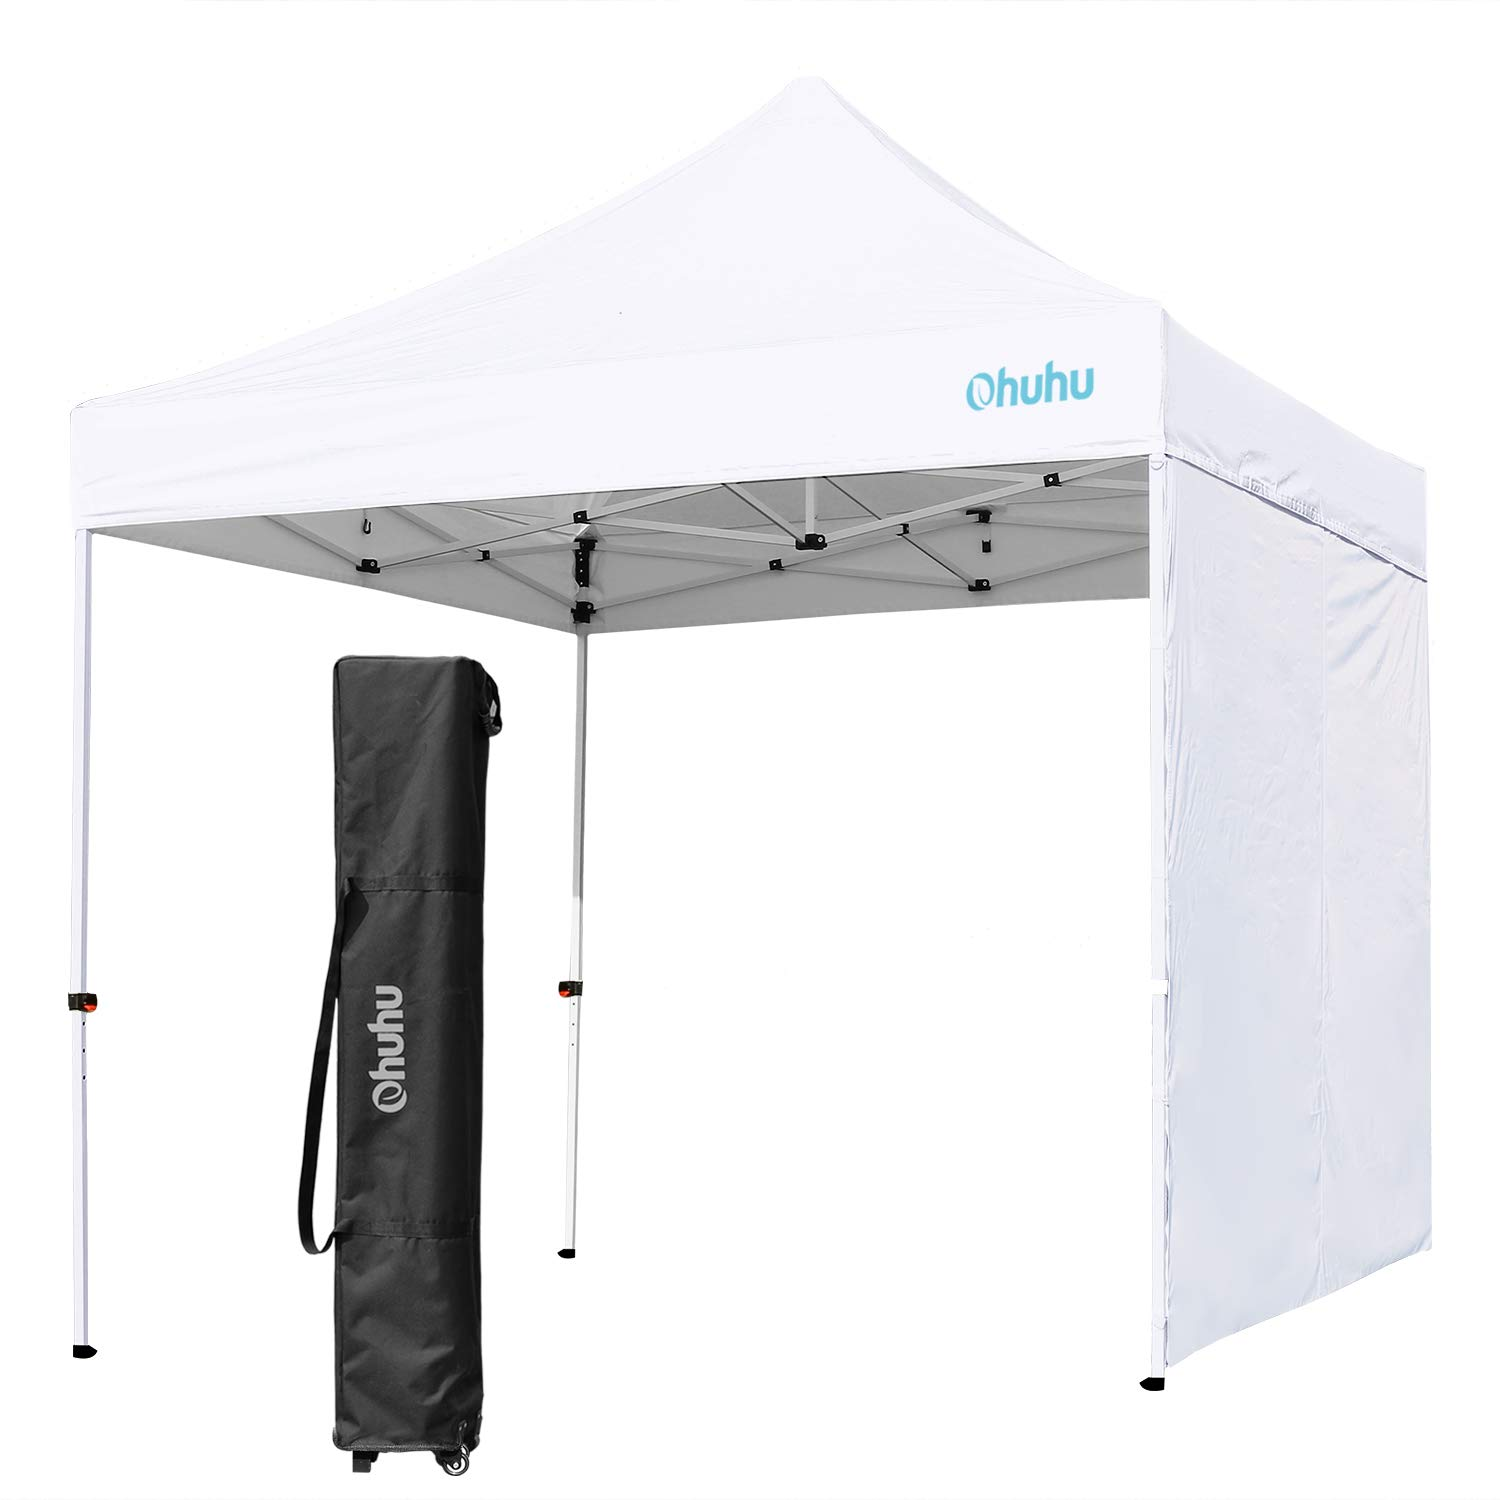 Ohuhu EZ Pop-Up Canopy Tent, 10 X 10 FT Commercial Instant Shelter with Sidewall Sun-Shade Wall, 4 Adjustable Height & Wheeled Carrying Bag, White